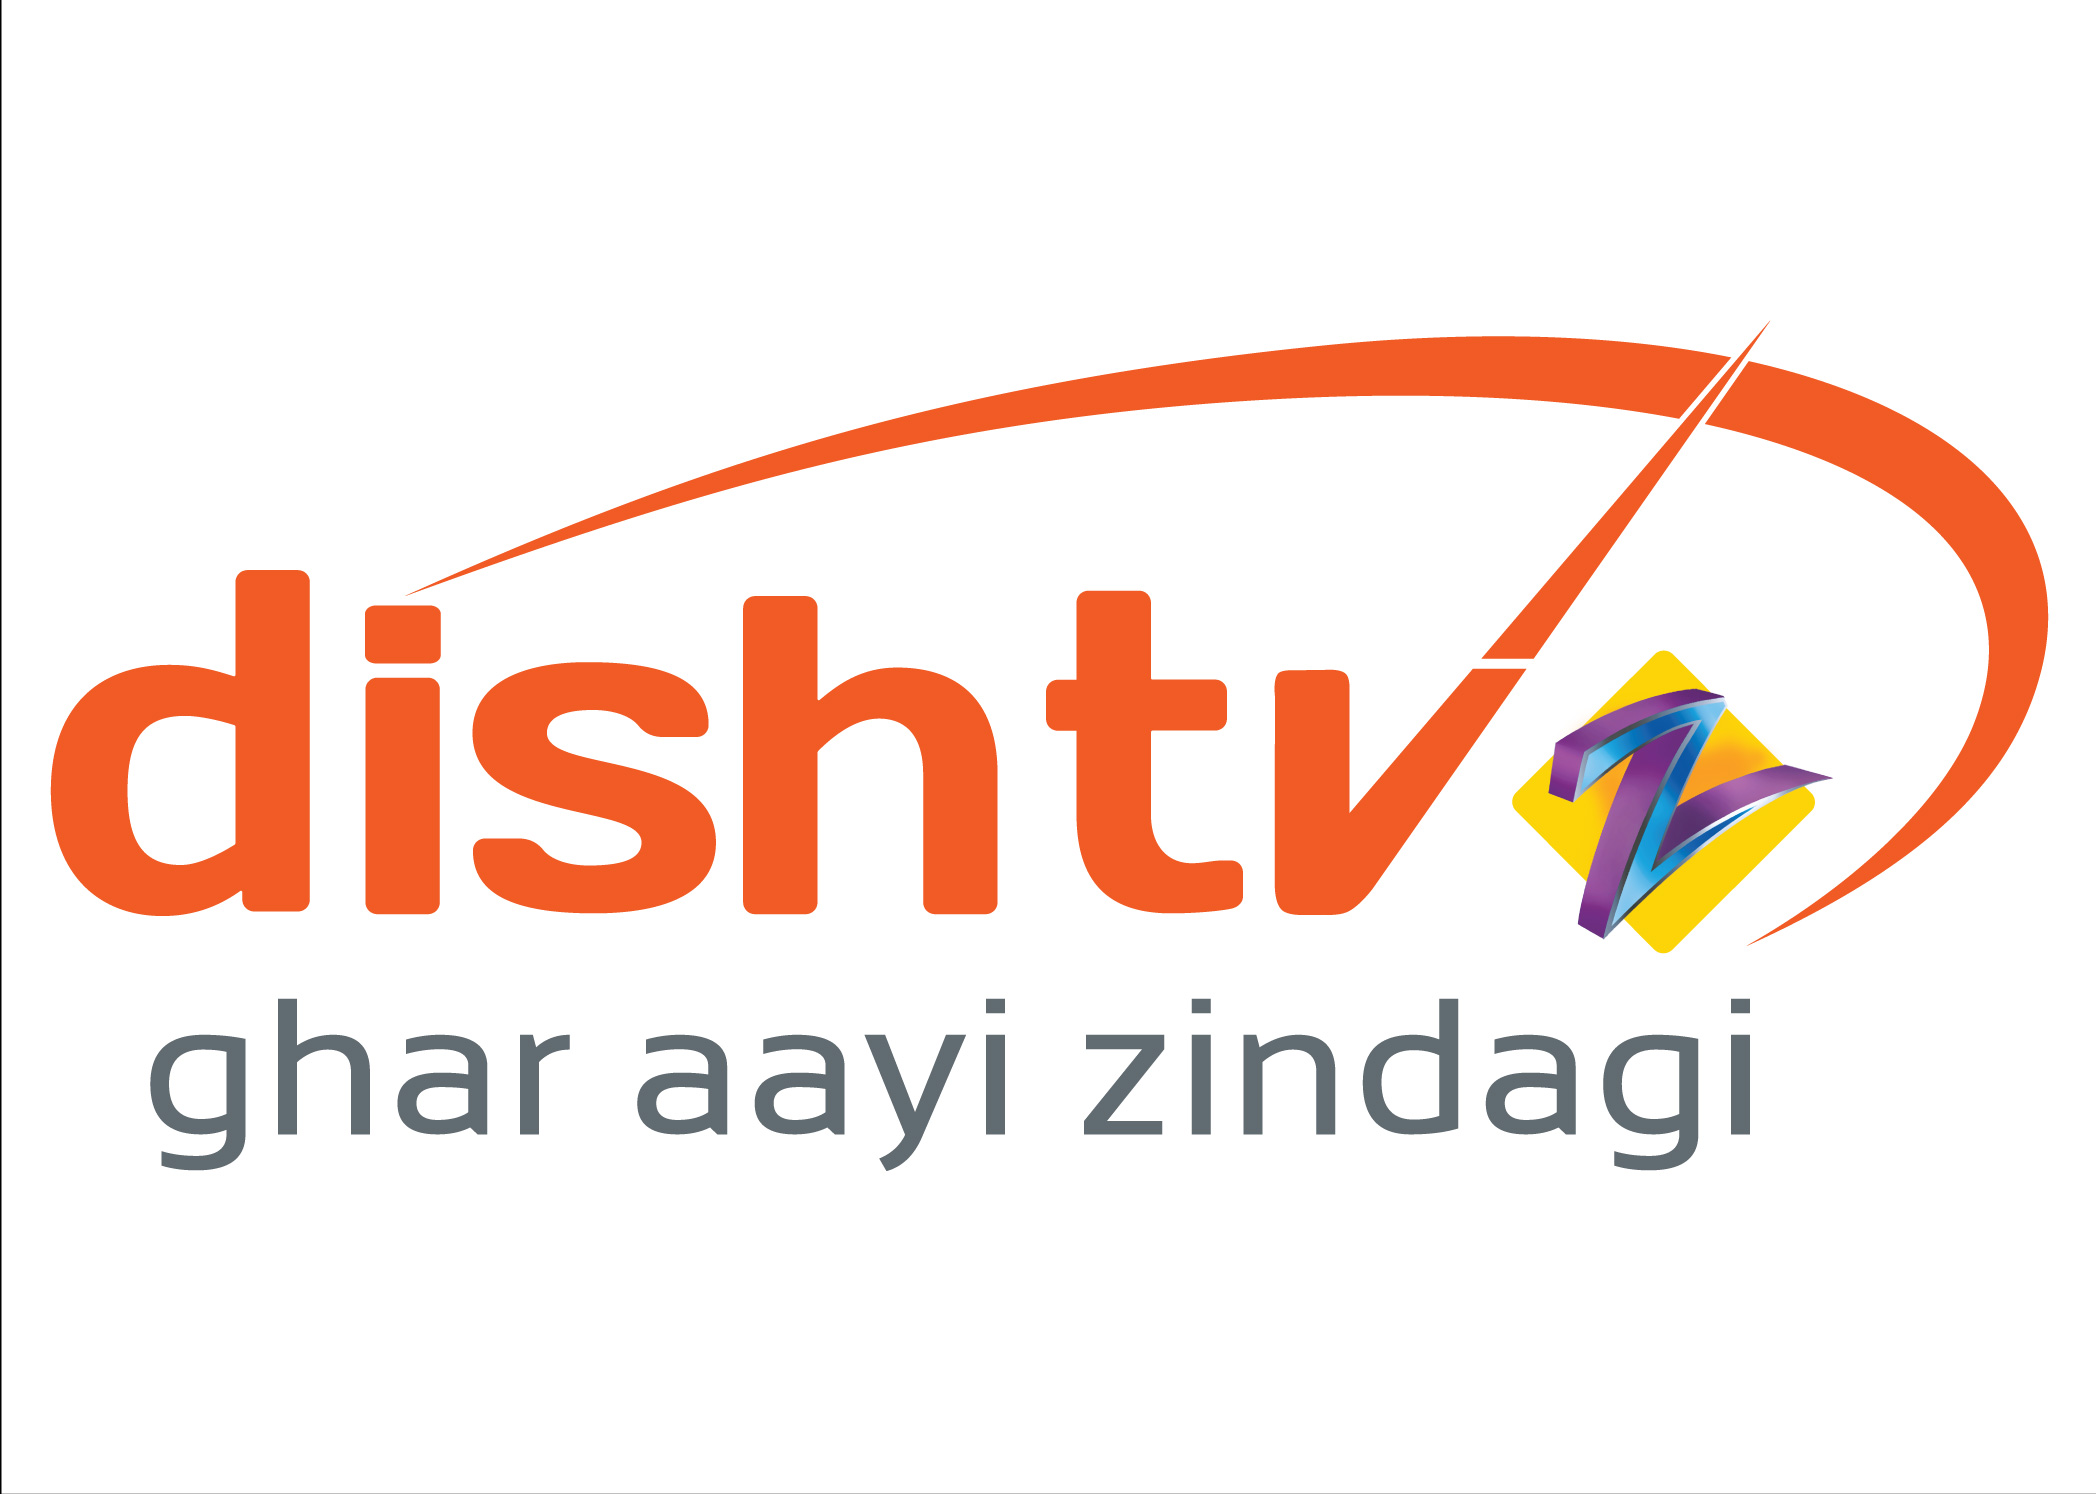 dish tv india - Parfu kaptanband co